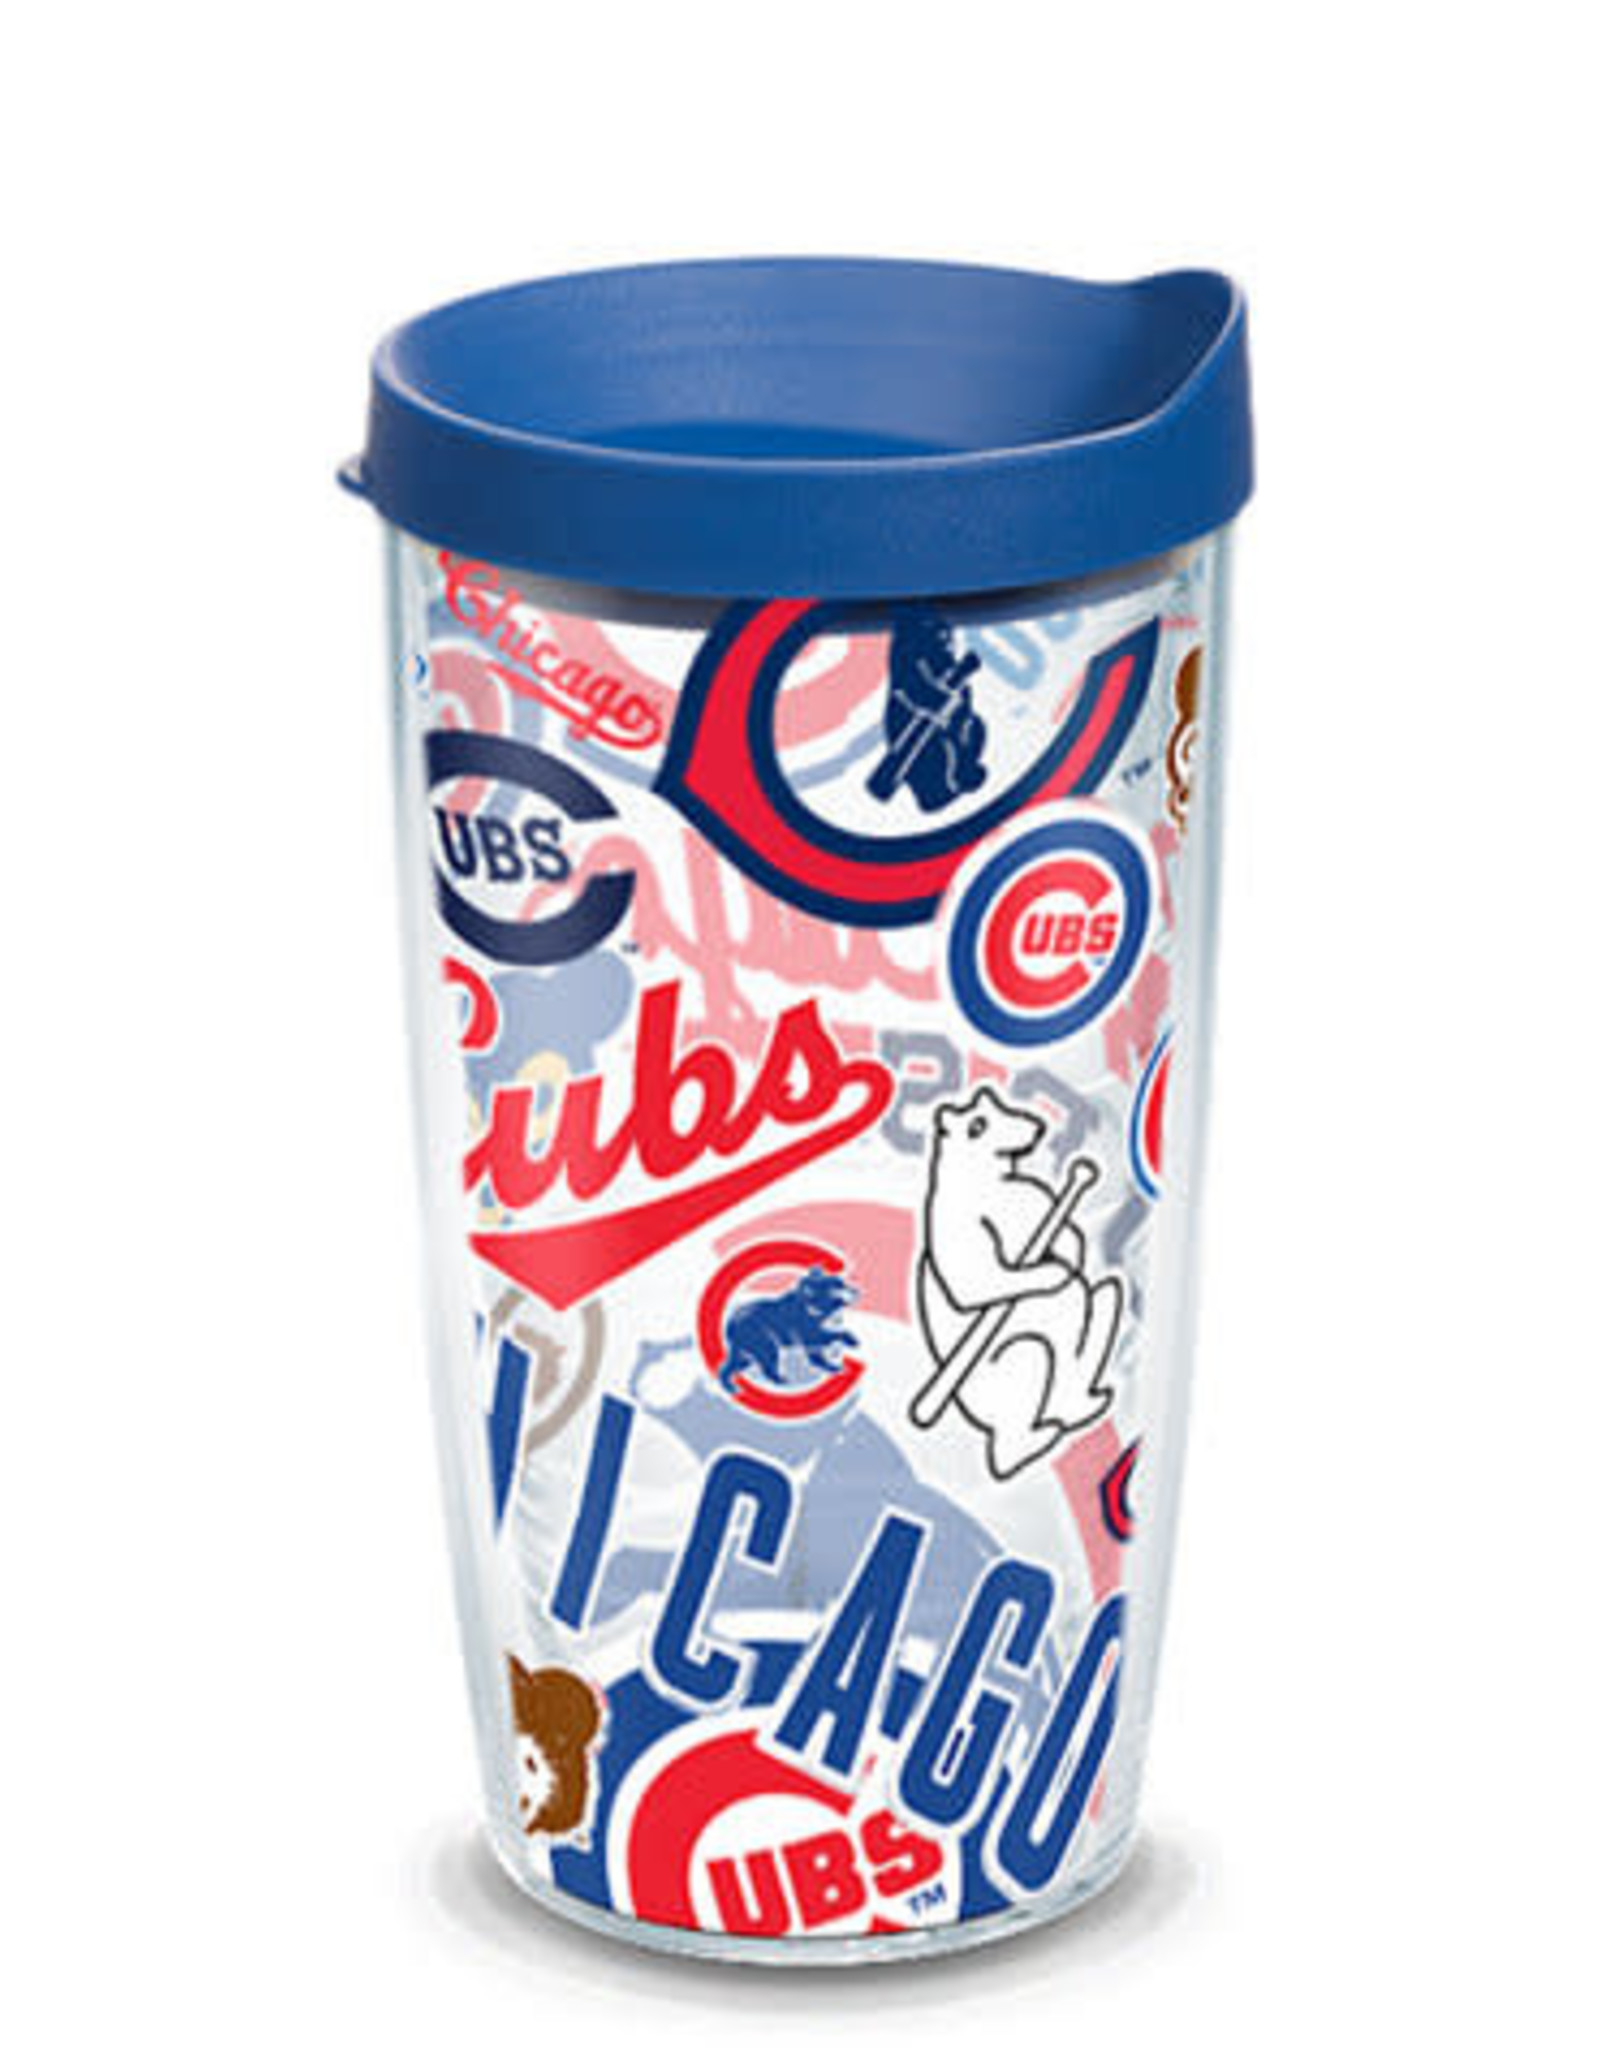 Tervis Tumbler 16oz/lid Cubs All Over